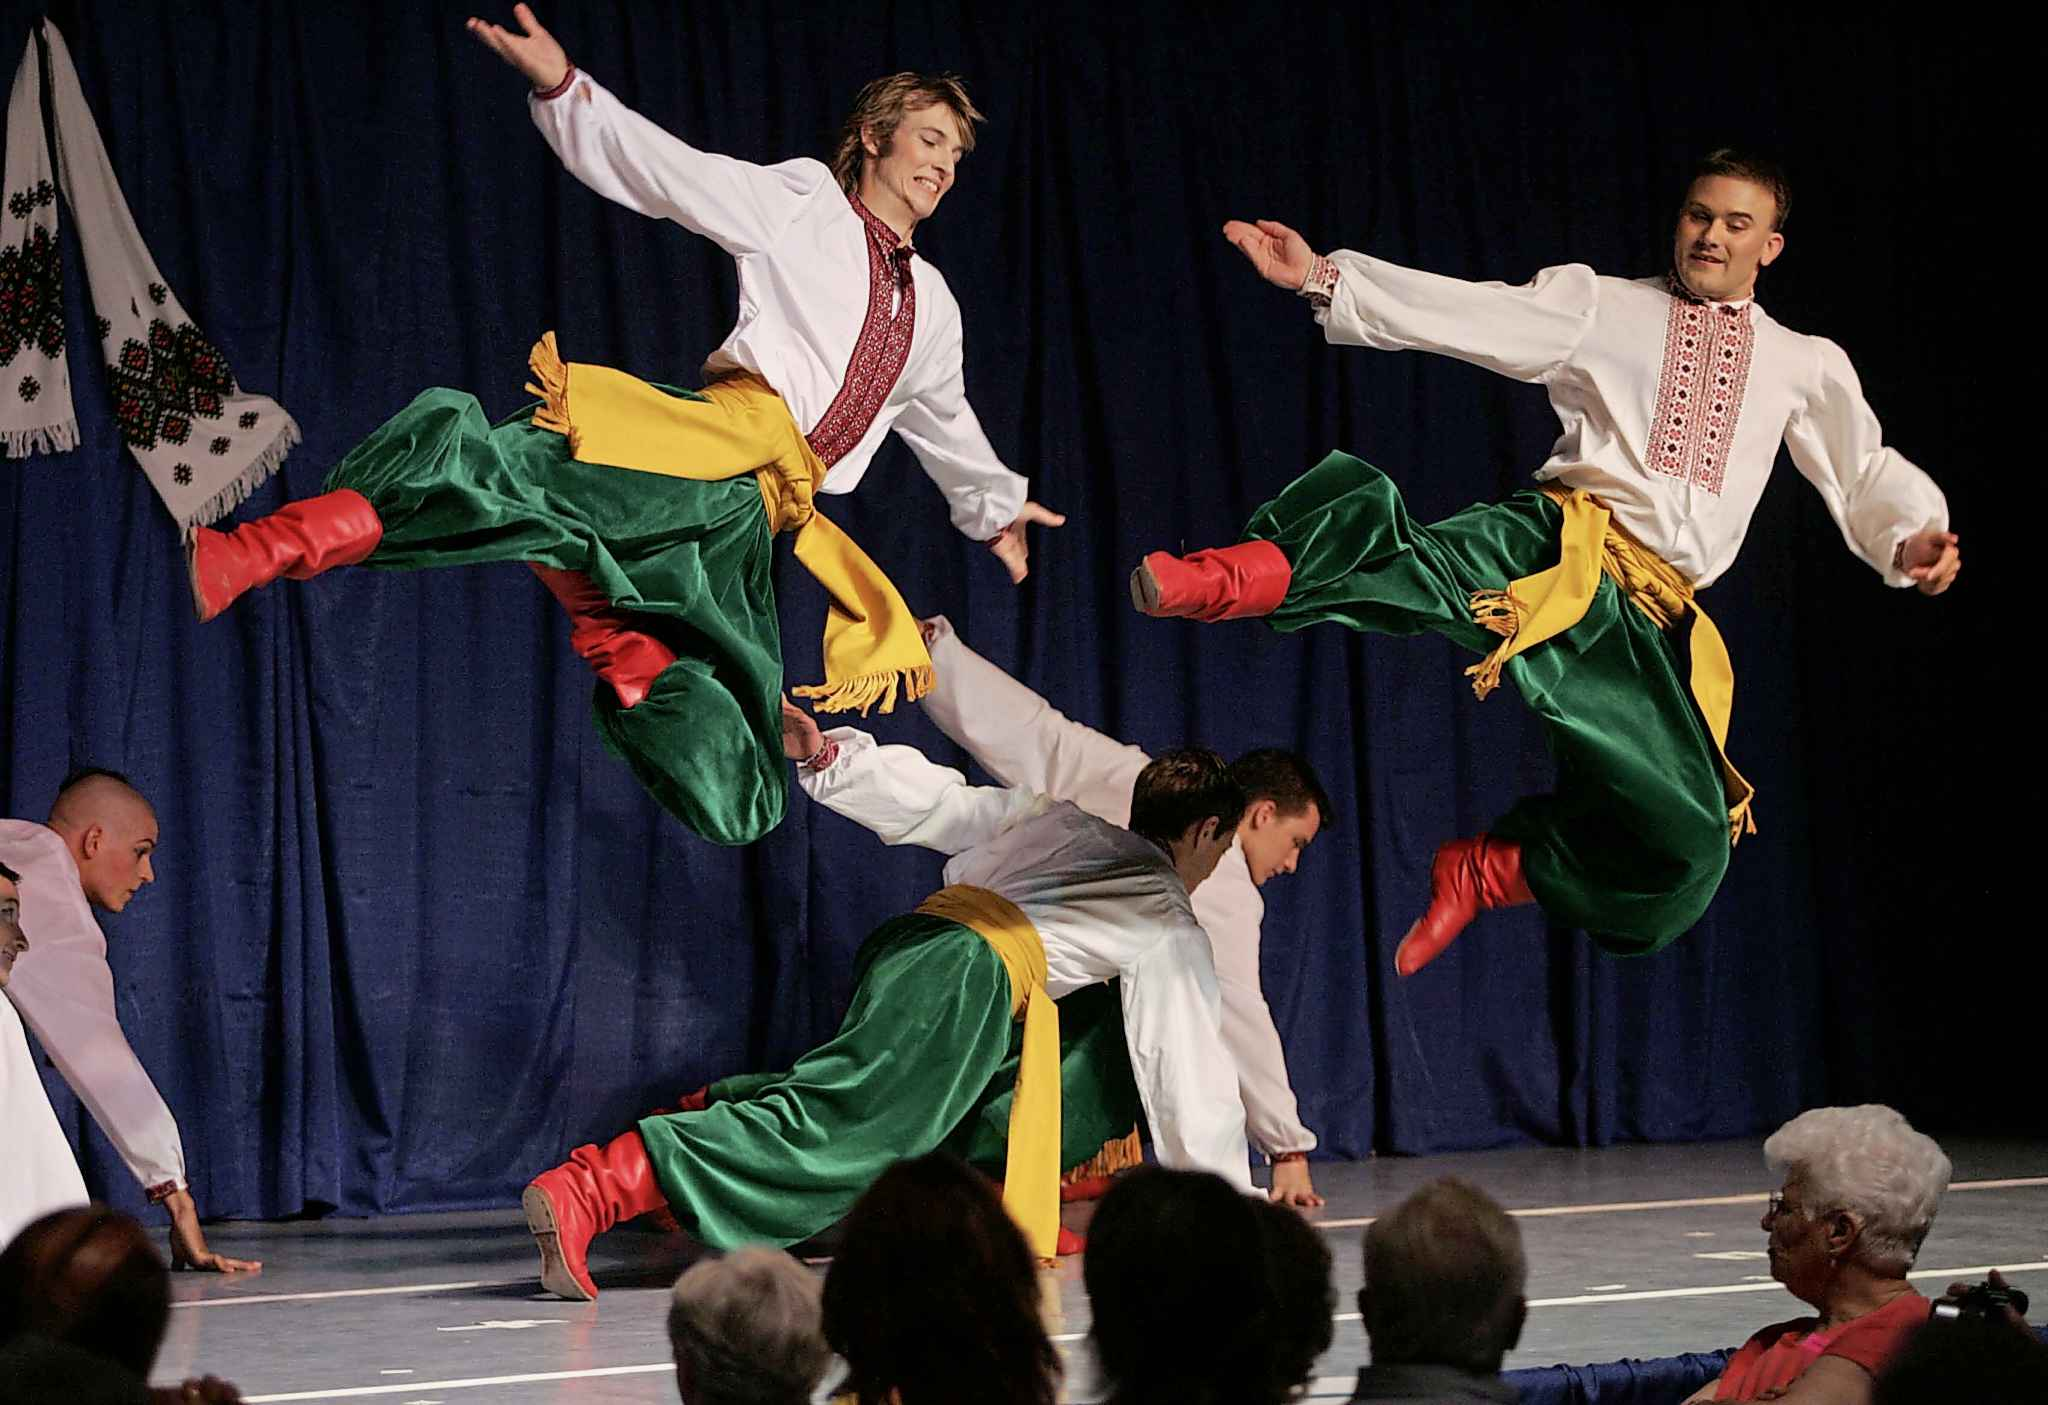 The Ukraine-Kyiv pavilion is one of 21 original Folklorama pavilions, meaning it will be celebrating its 50th anniversary this year, too. (Boris Minkevich / Winnipeg Free Press files)